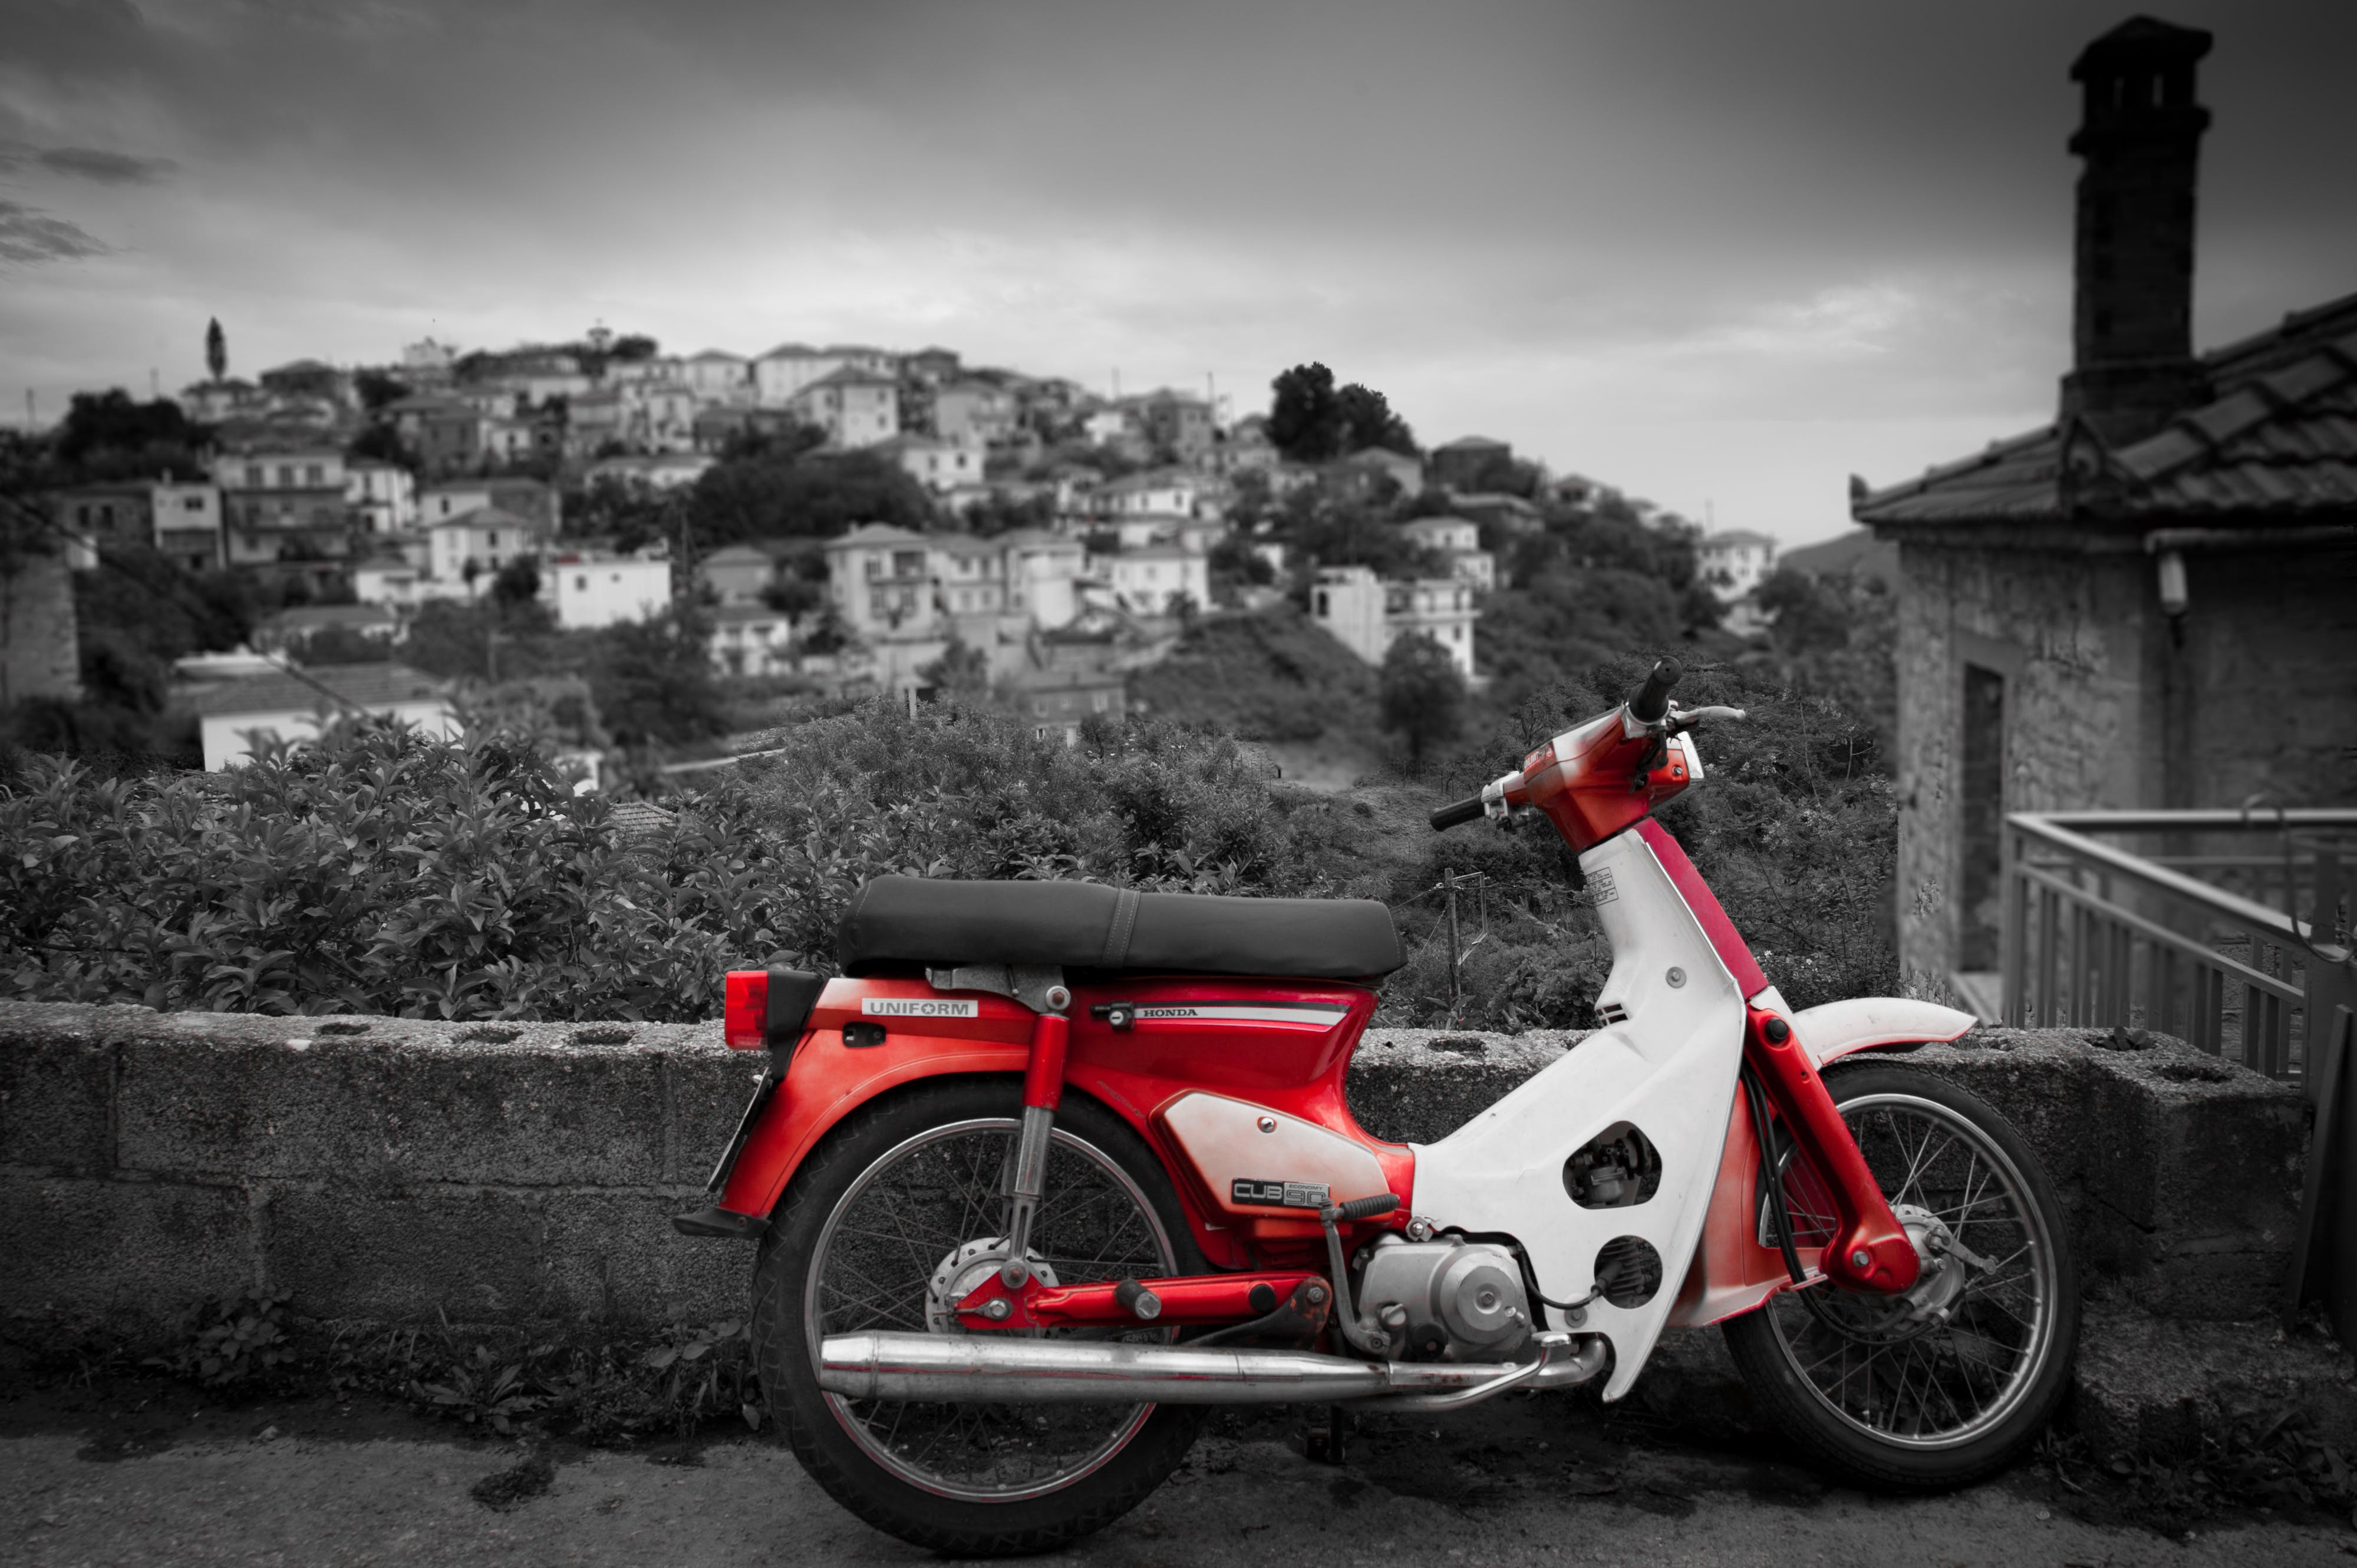 White and Red Motorcycle